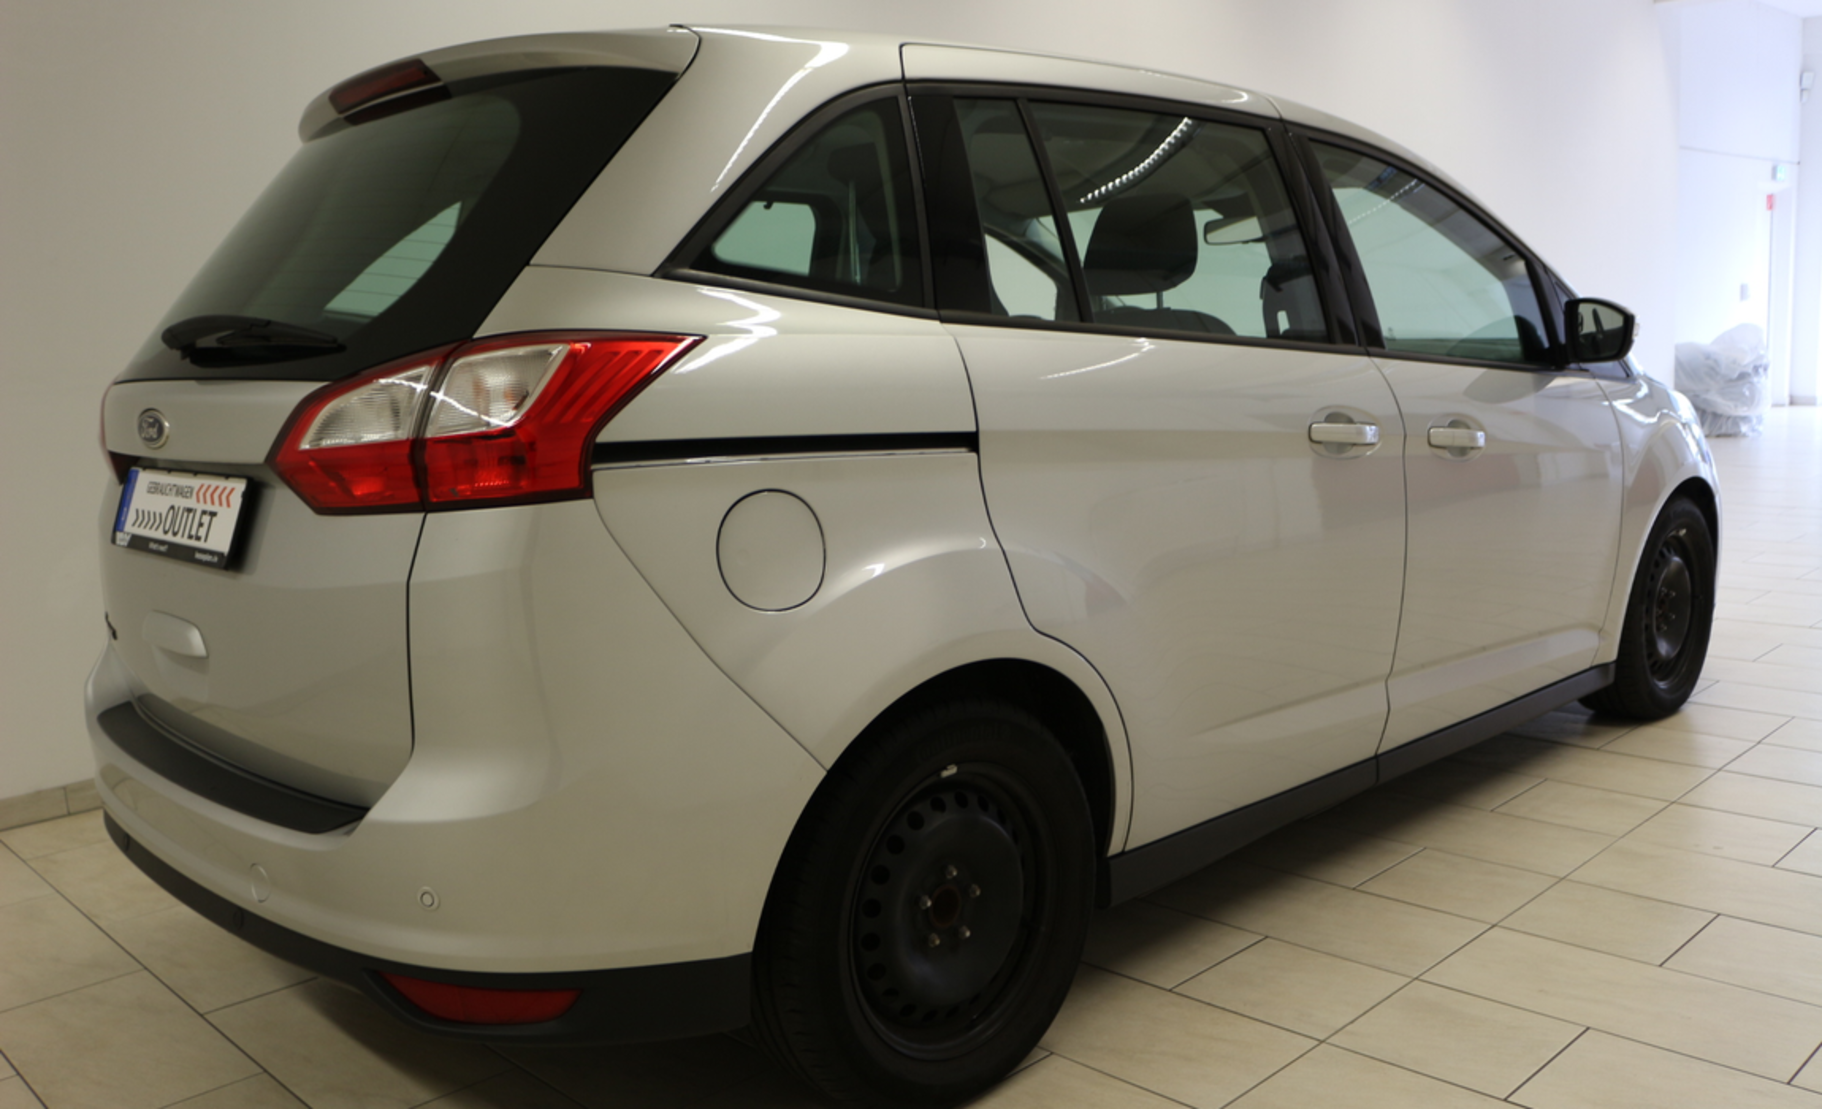 Ford Grand C-Max 2.0 TDCi Aut., Trend (498724) detail2